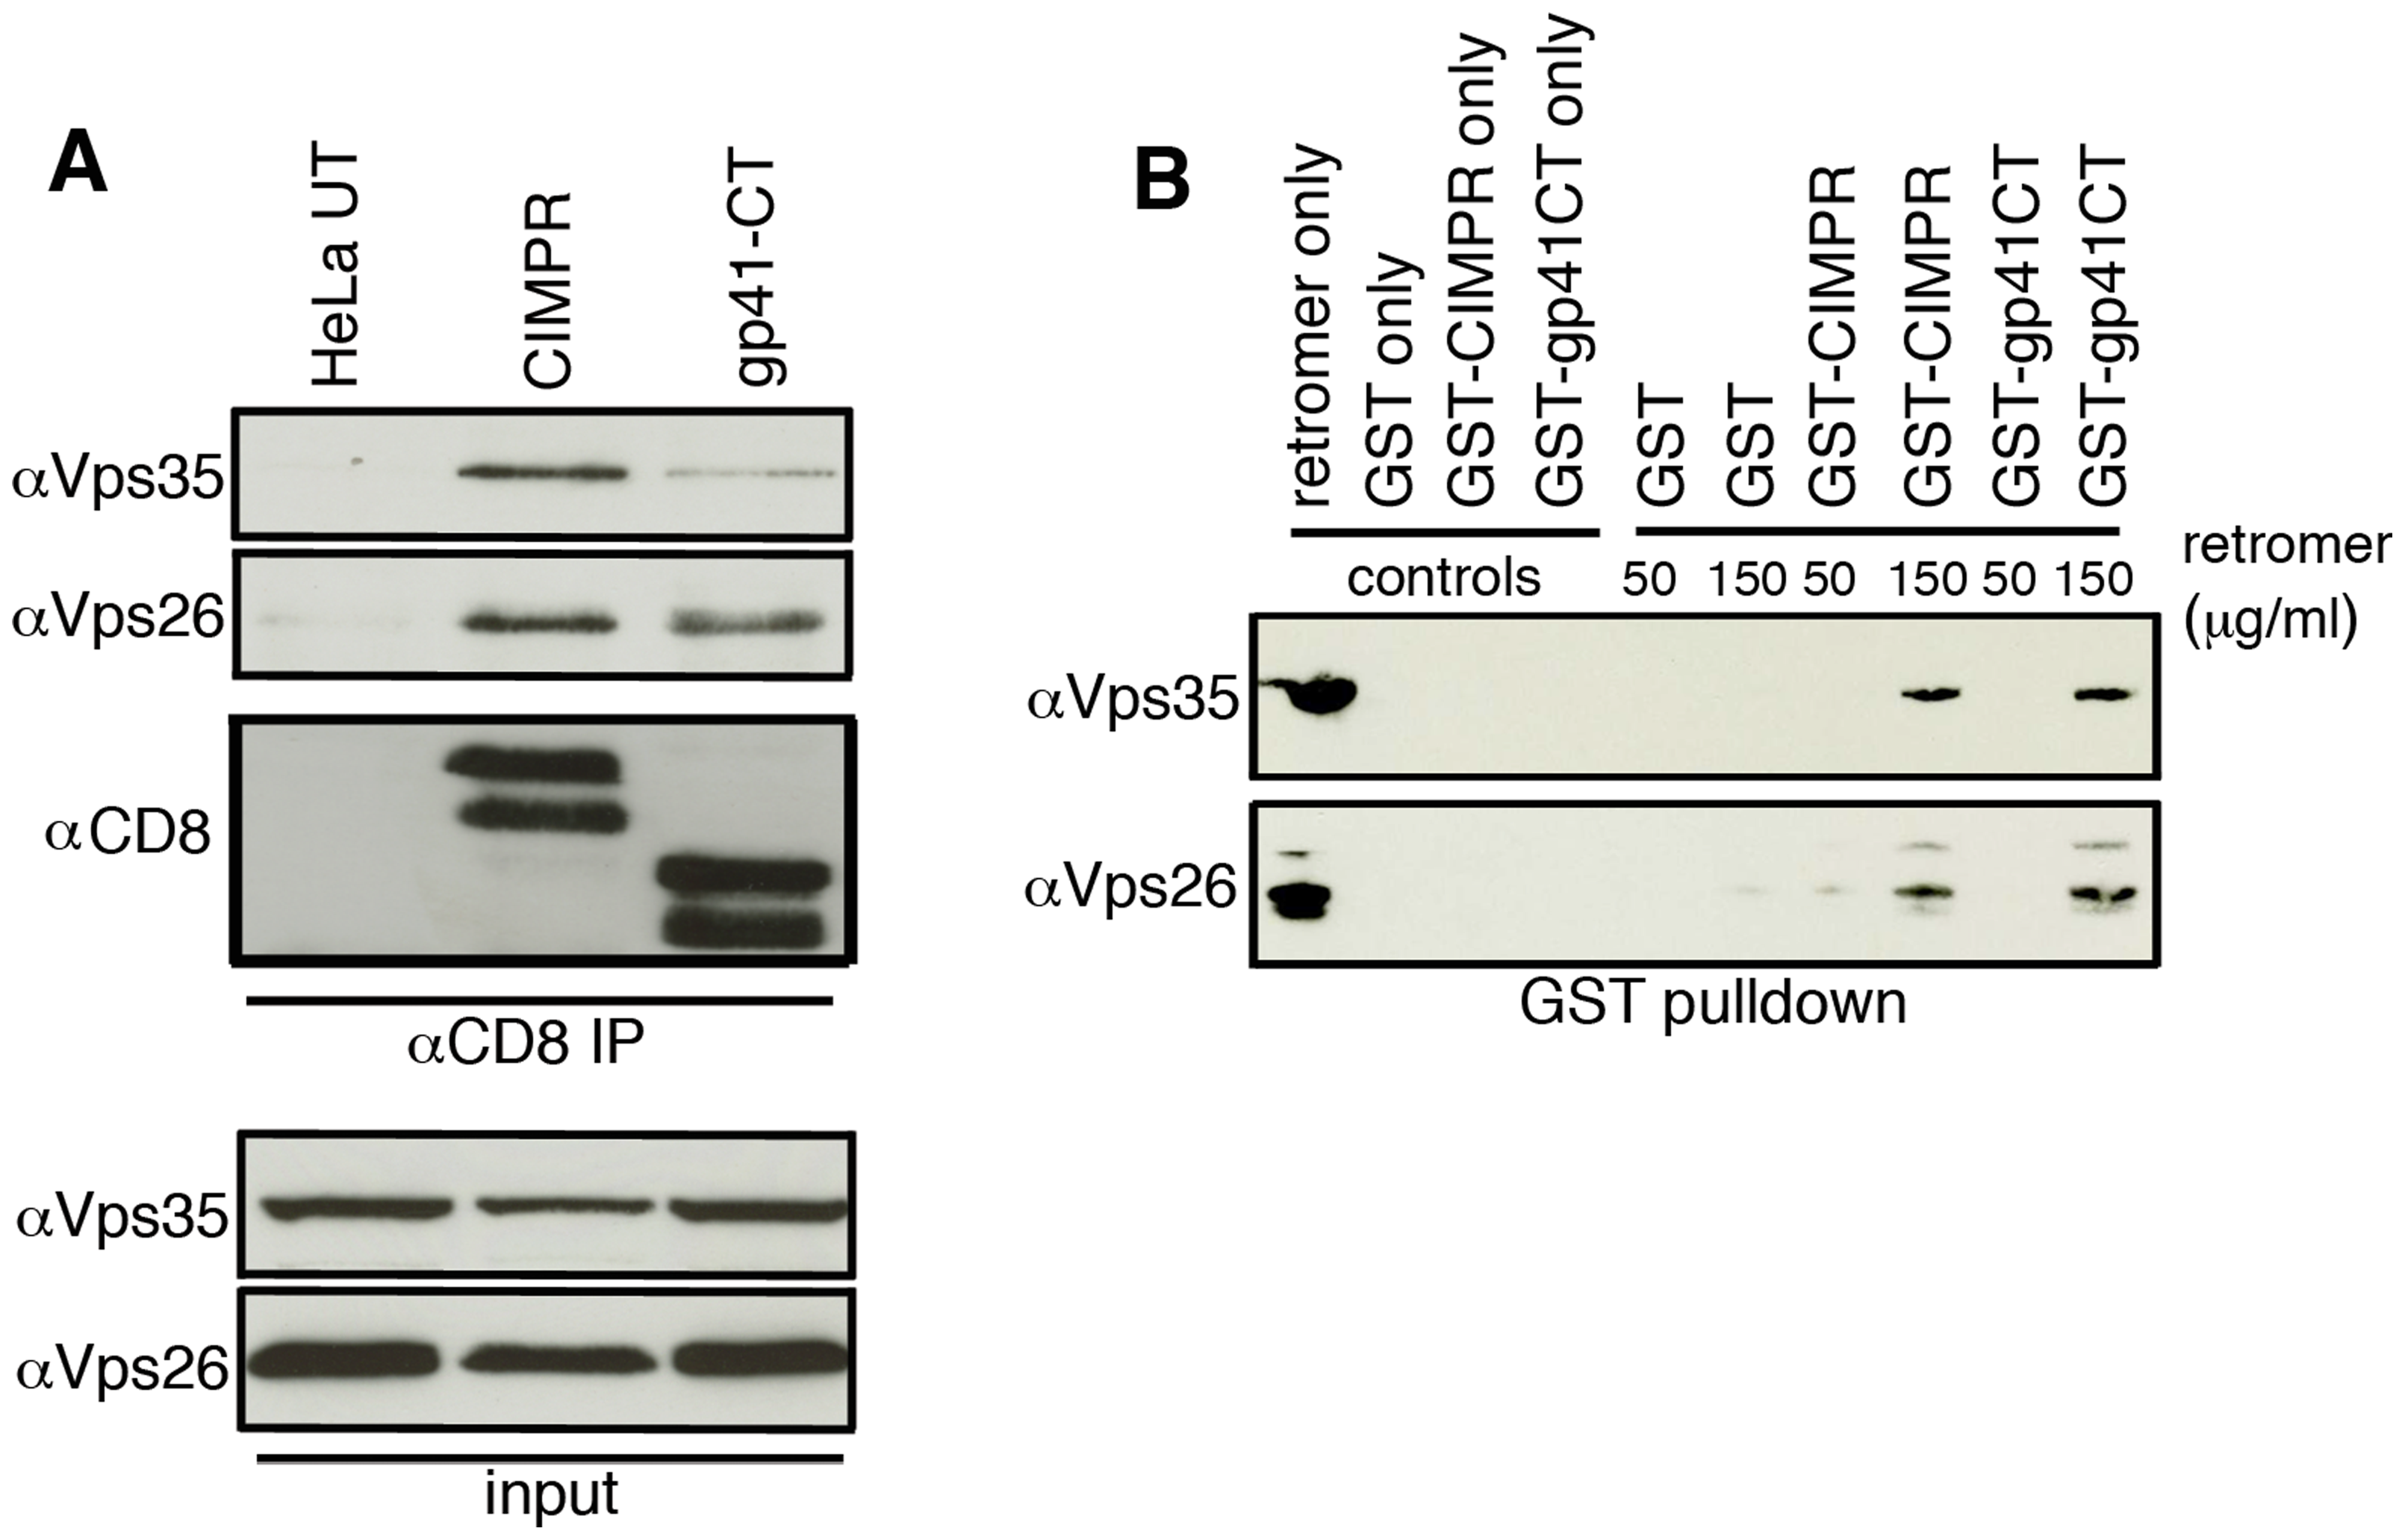 The gp41 cytoplasmic tail binds directly to retromer.